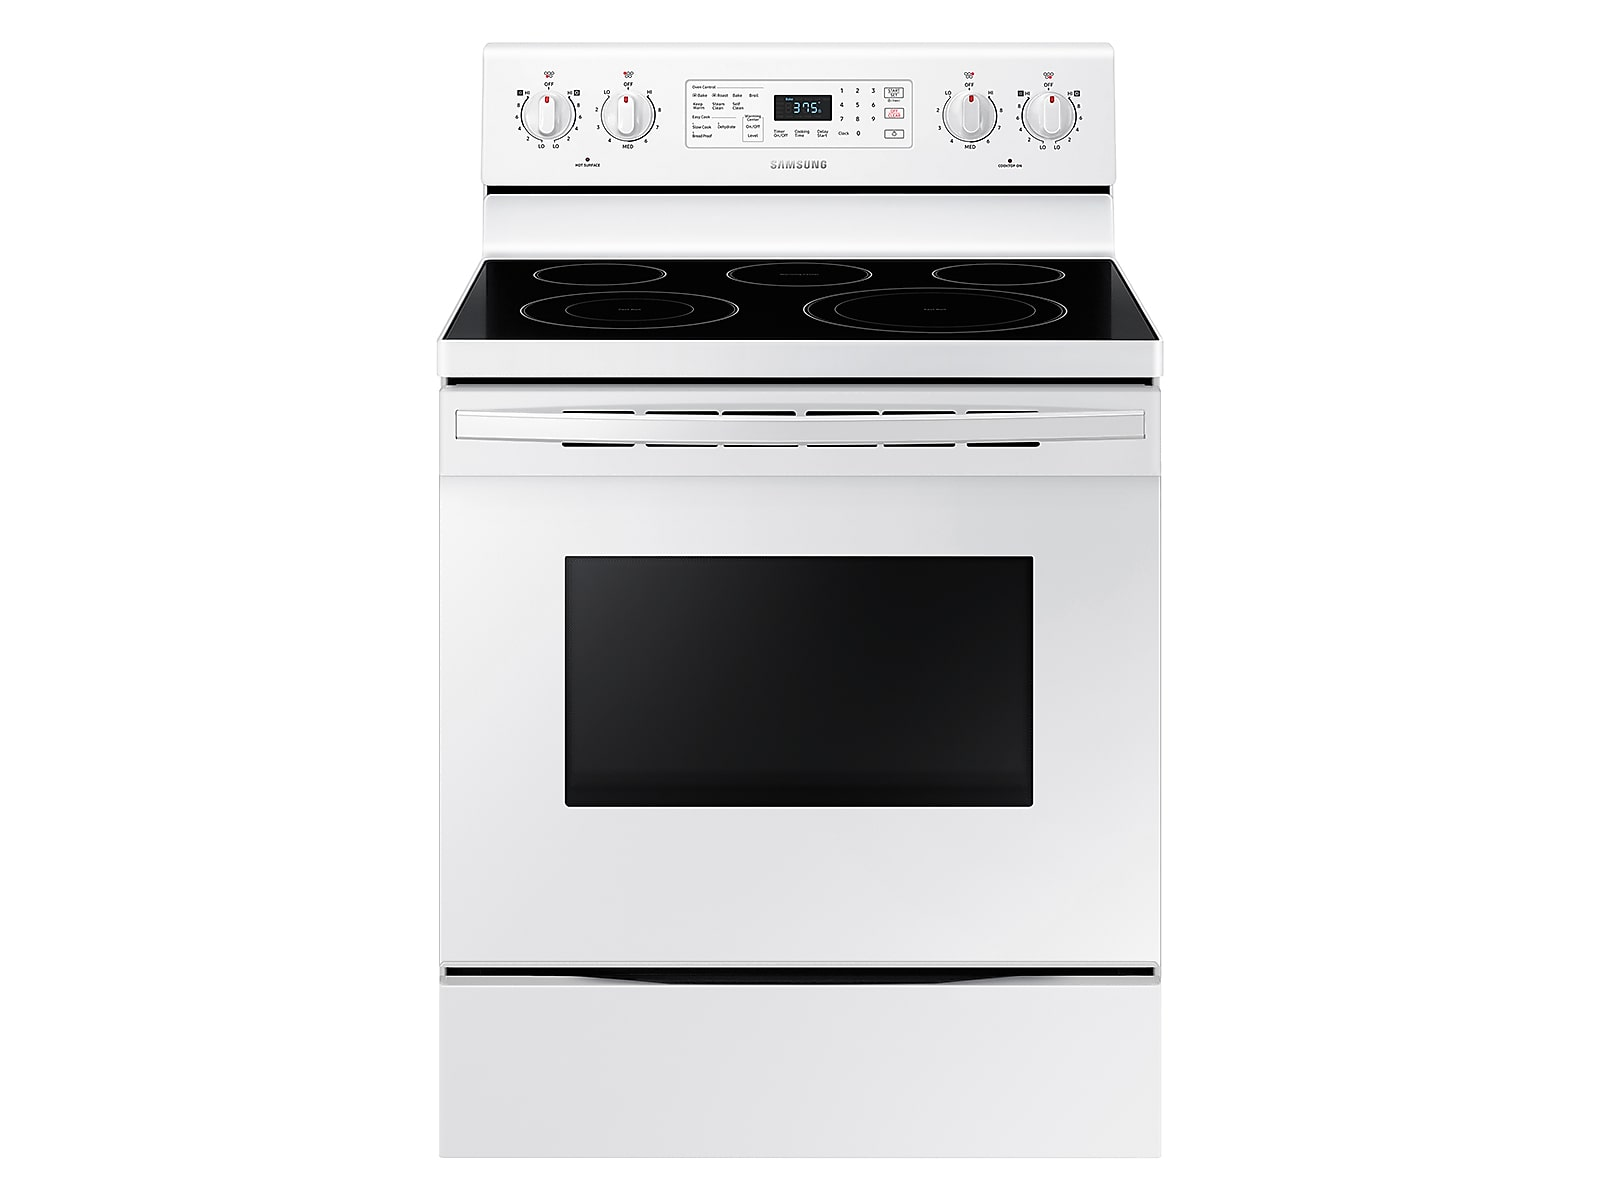 Samsung 5.9 cu. ft. Freestanding Electric Range with Convection in White(NE59T4321SW/AA)